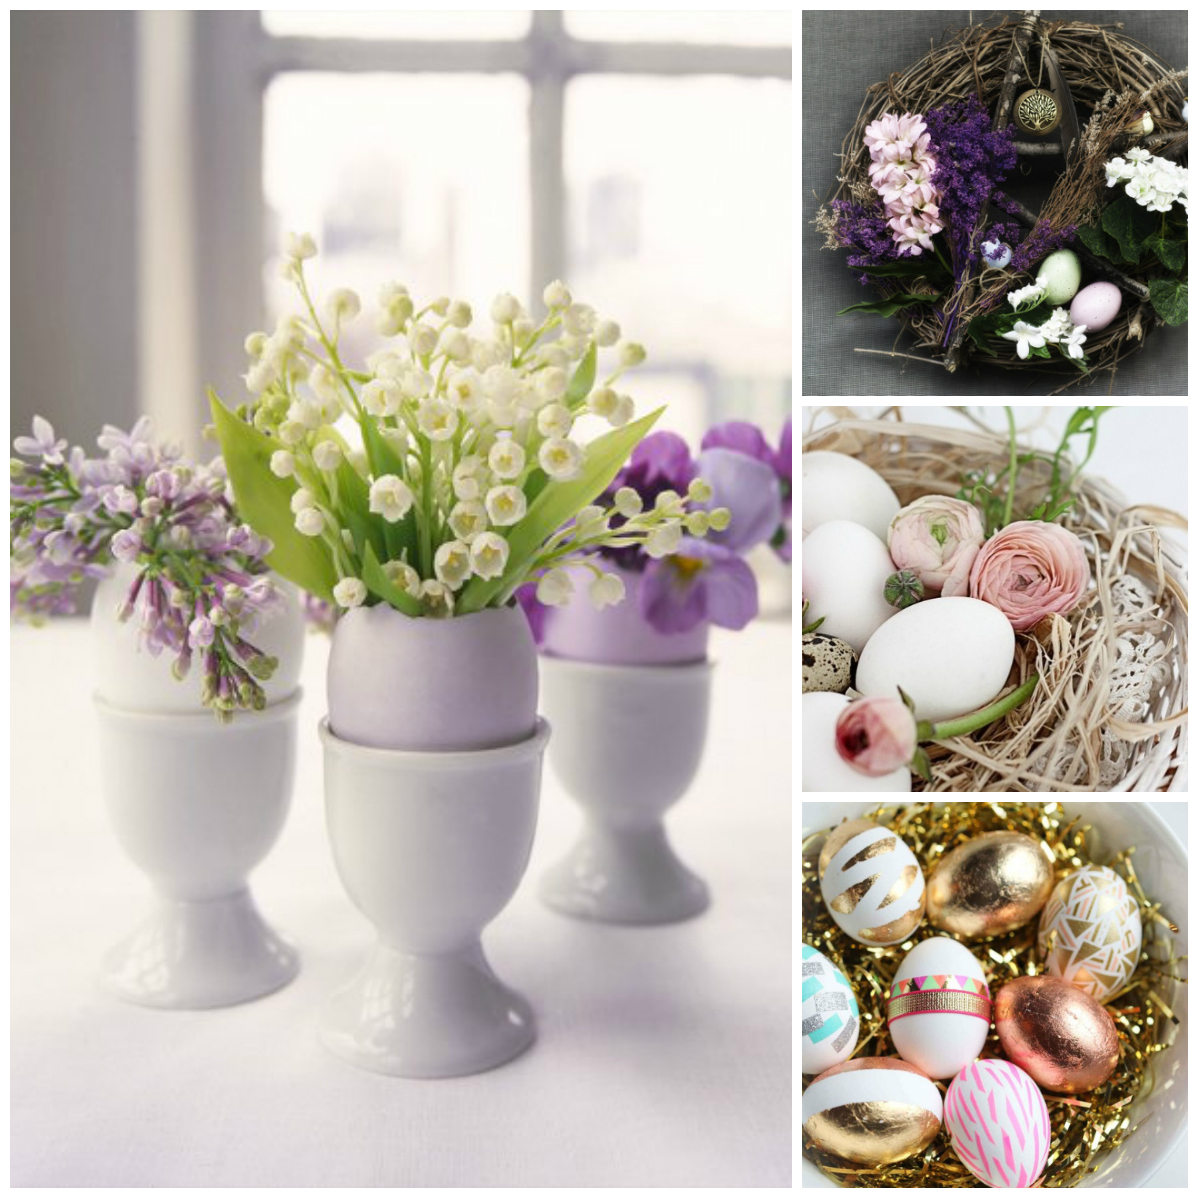 Rustic Mantel Décor That Will Adorn Your Bored To Death: Easter Home Decor: Original Ideas